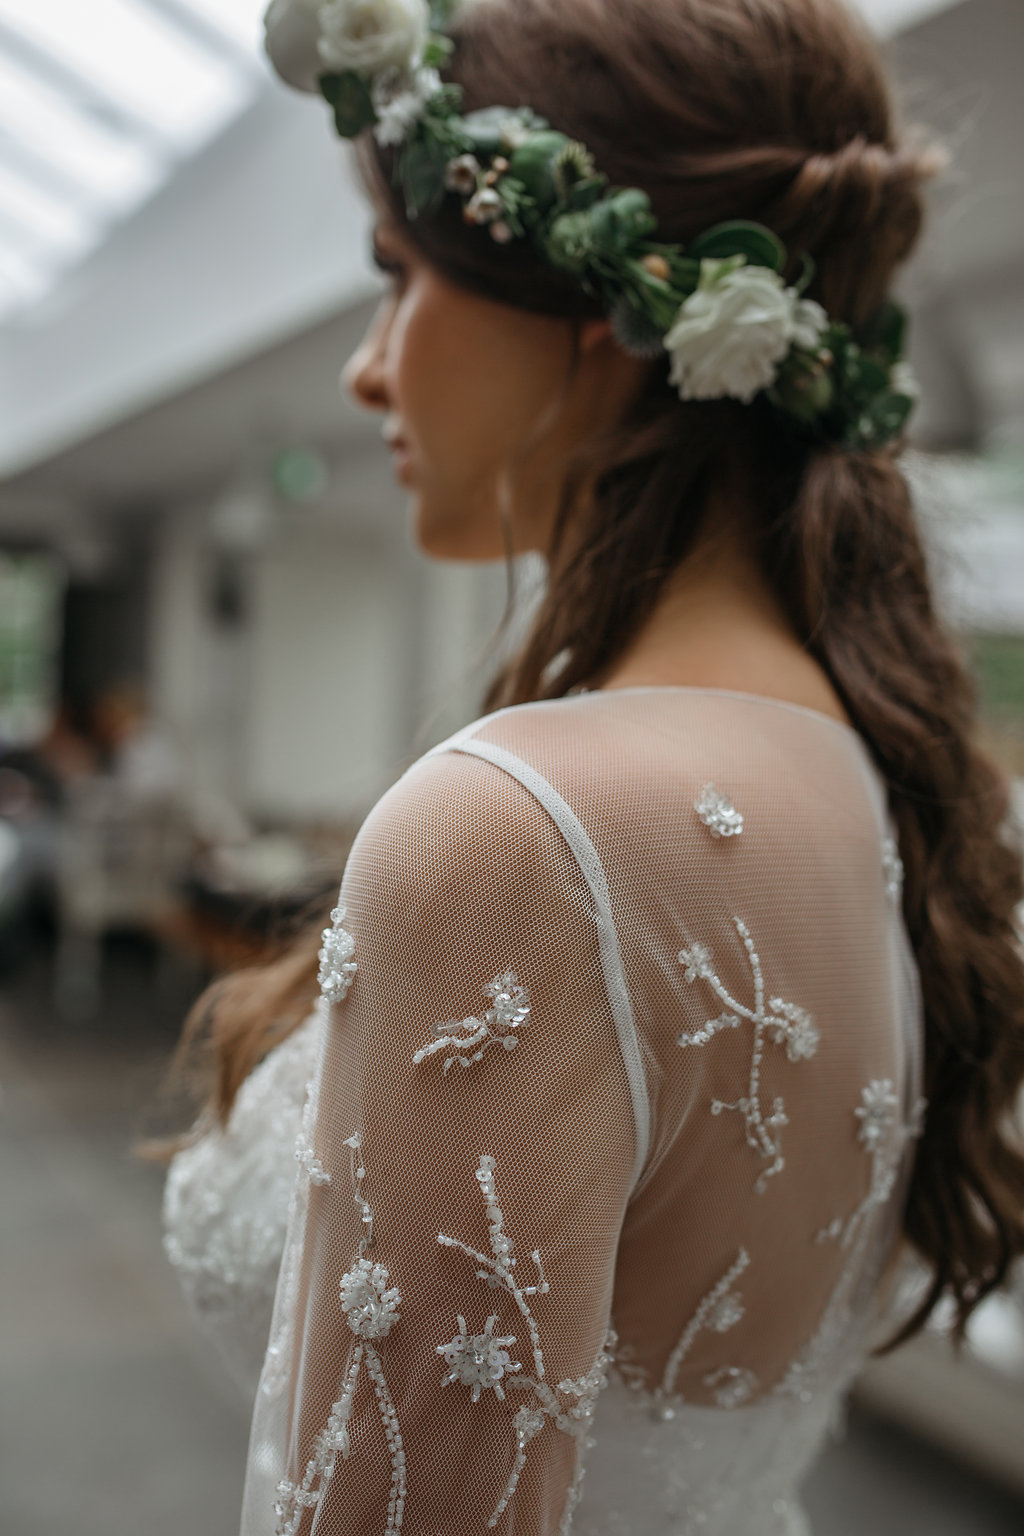 Boho botanical bride details | The Sweet Stuff